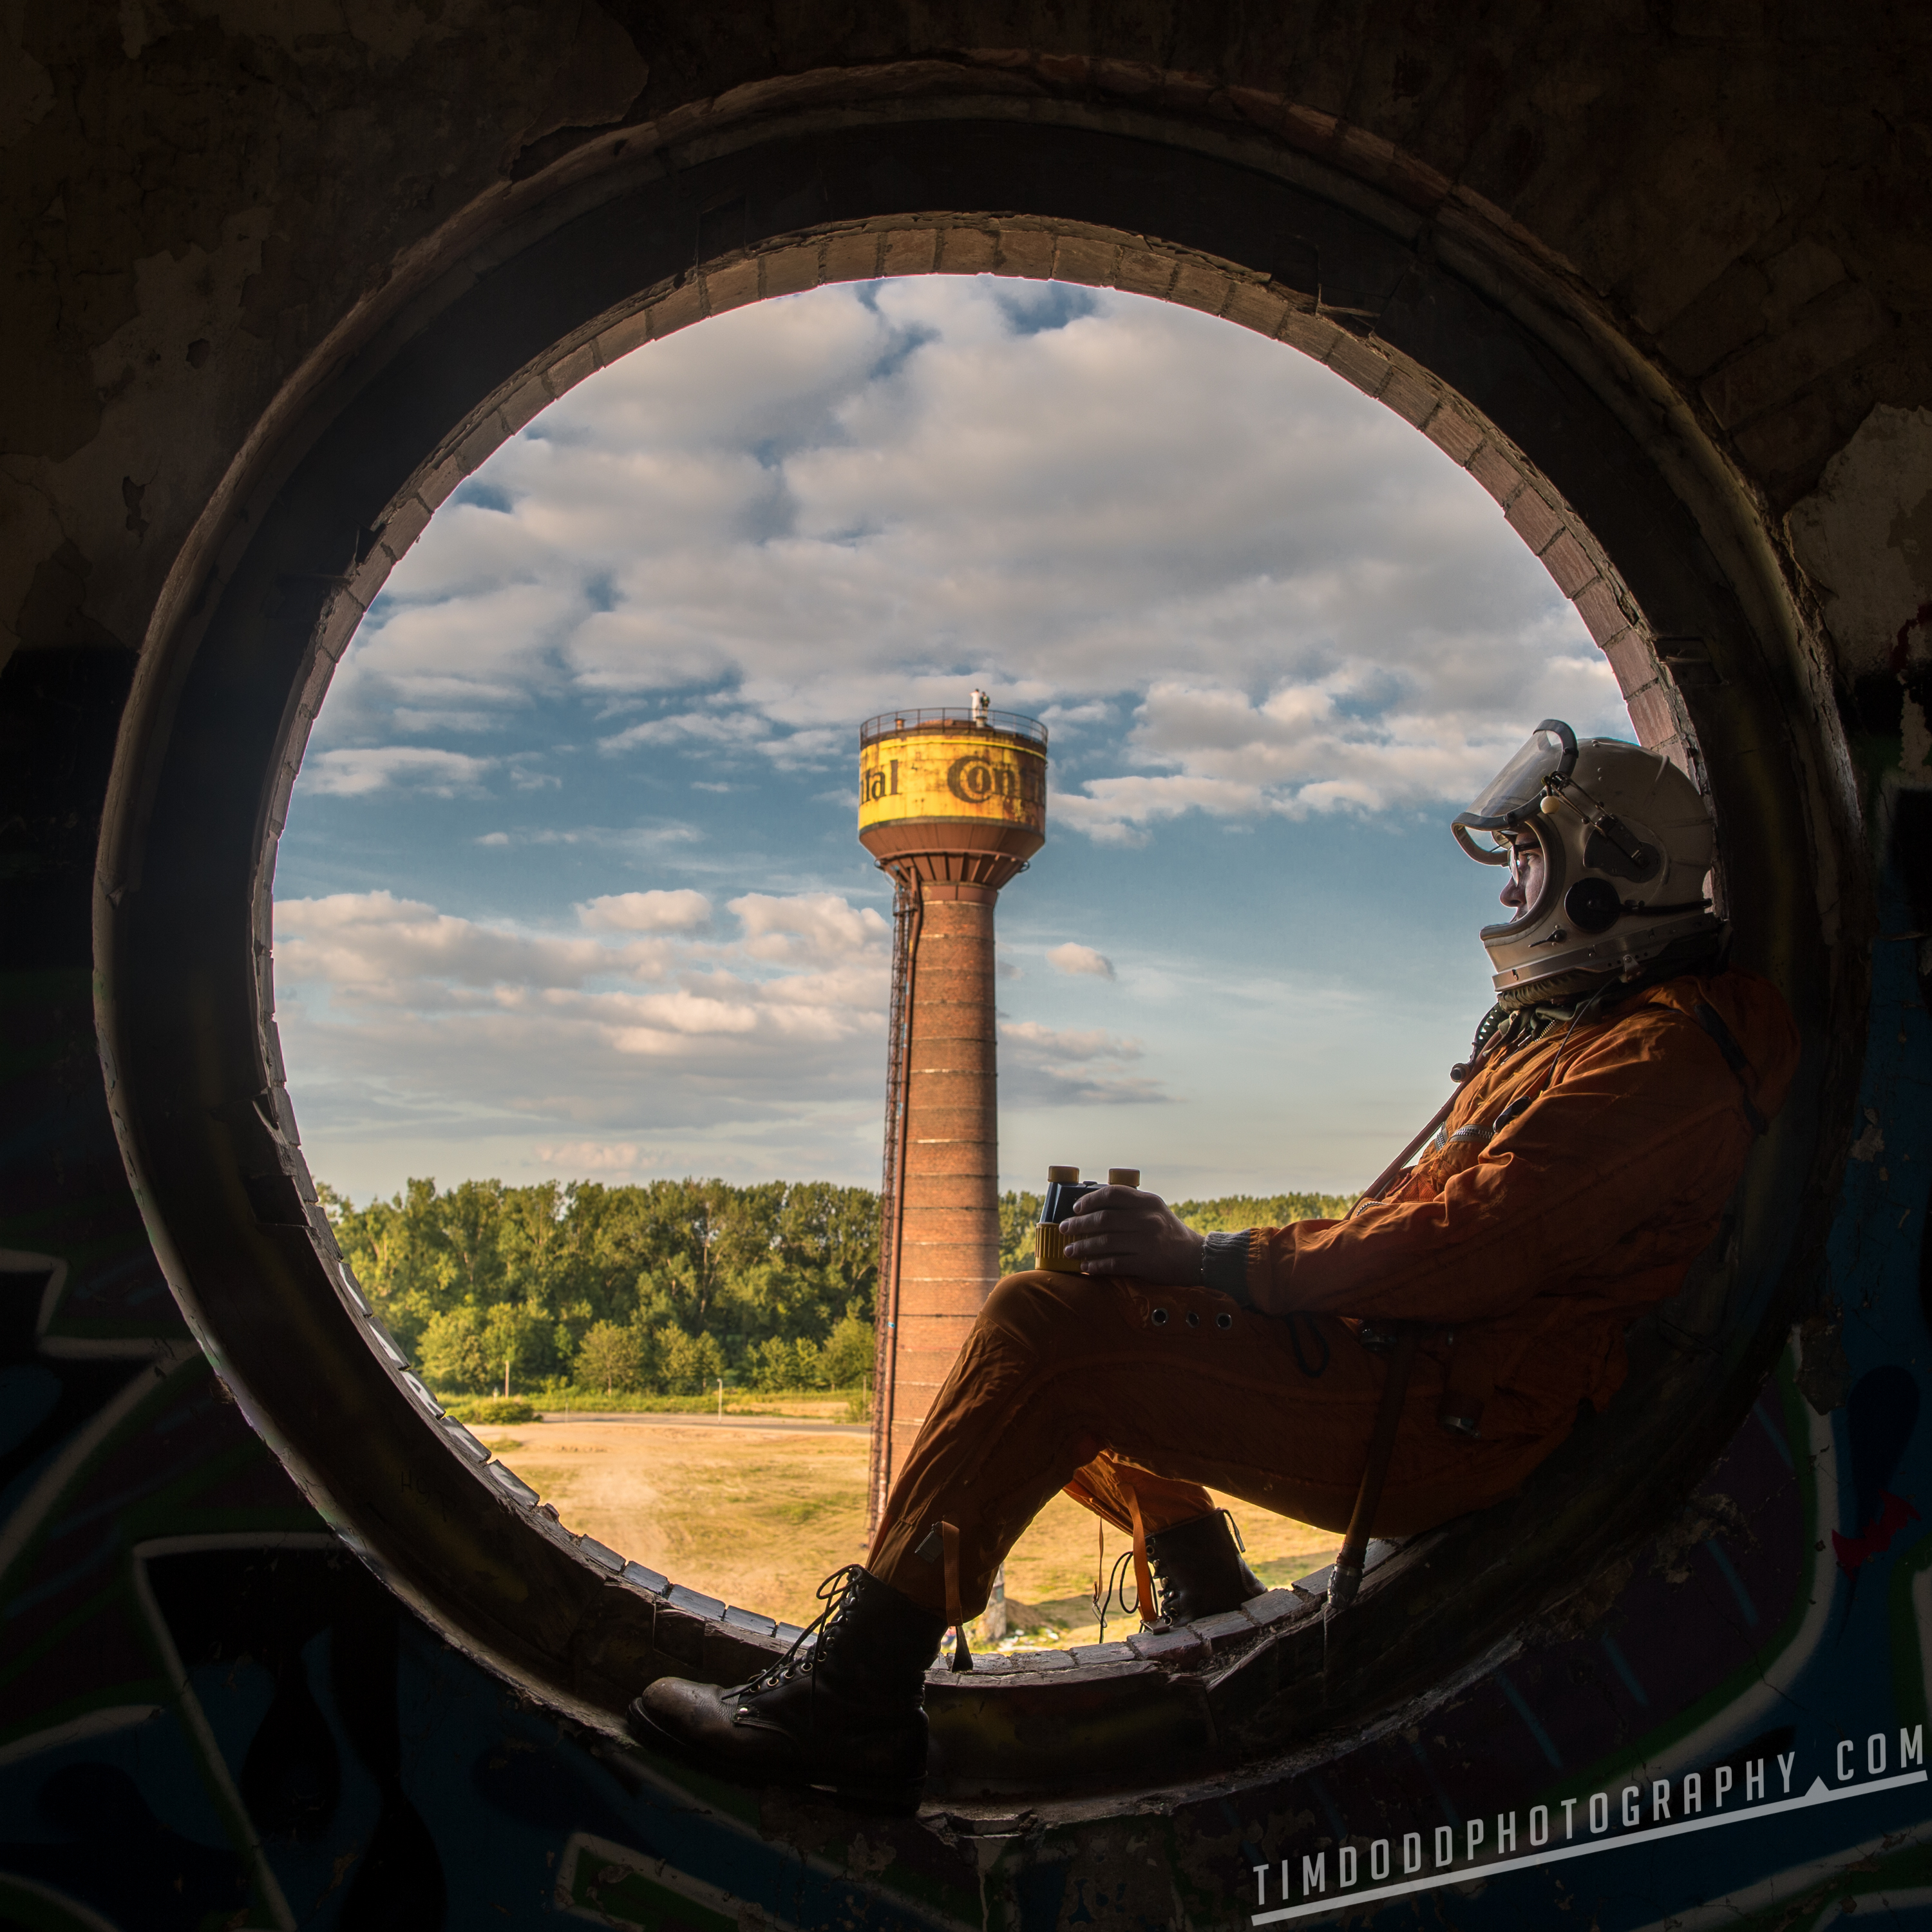 Hannover Hanover Conti Continental Tire abandoned Astronaut Space Suit Russian Cosmonaut window water tower Germany German abandoned by Tim Dodd Photography Everyday Astronaut